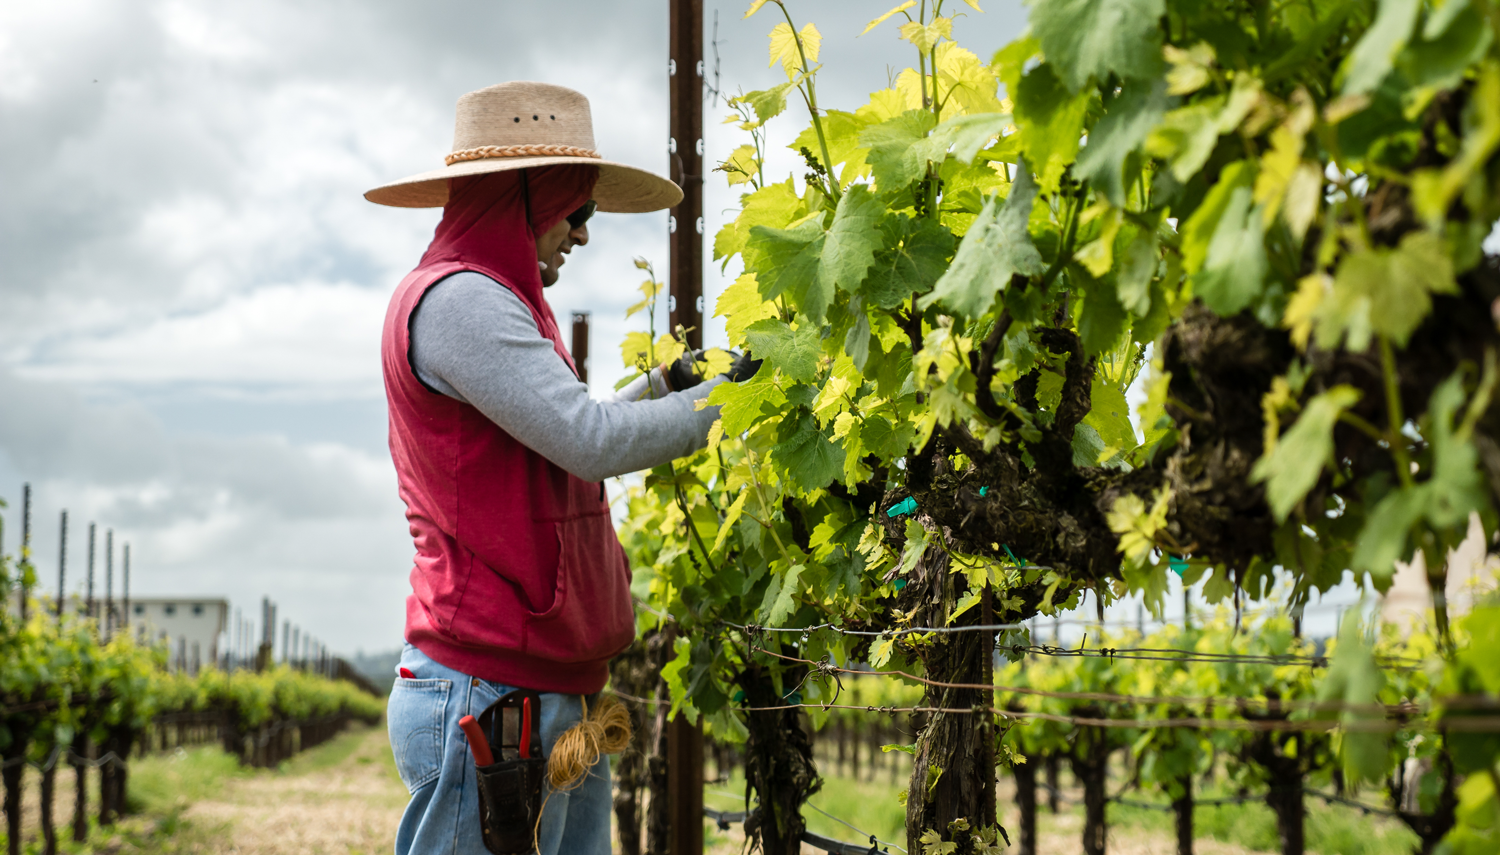 Vineyard_worker_in_red_vest_hand_picking_grapes_during_the_day.png